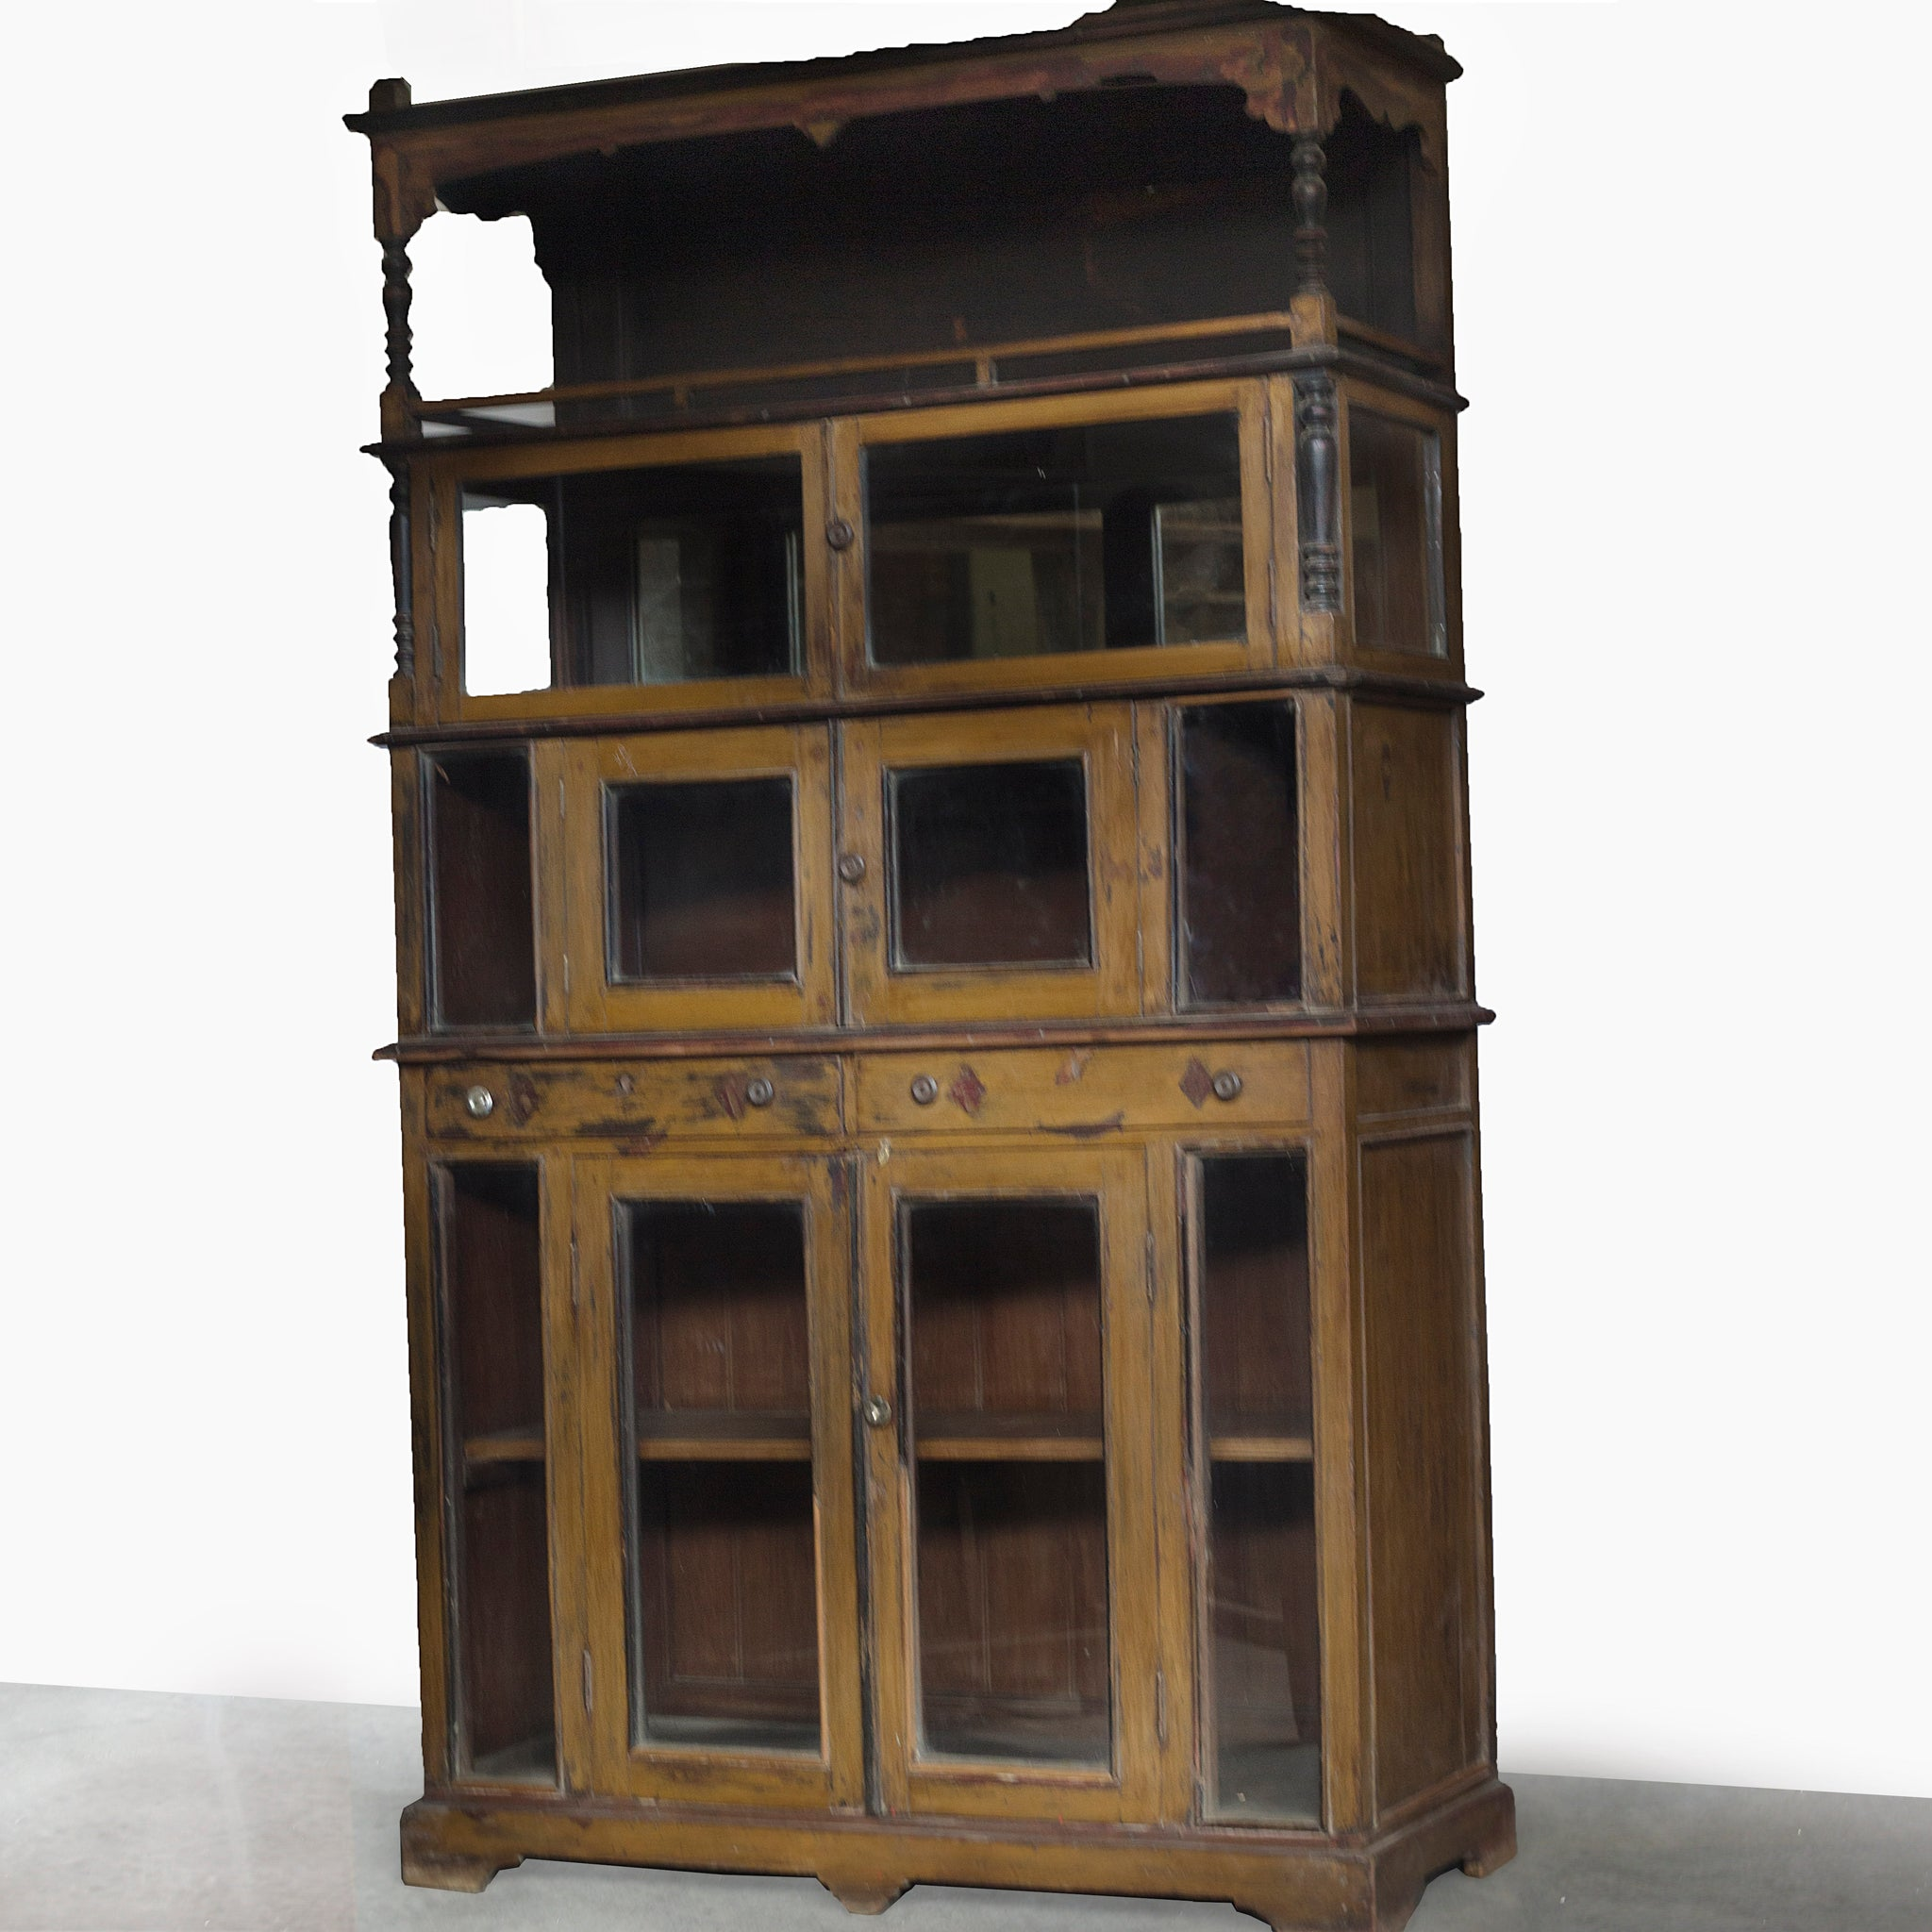 WOODEN AND GLASS CABINET